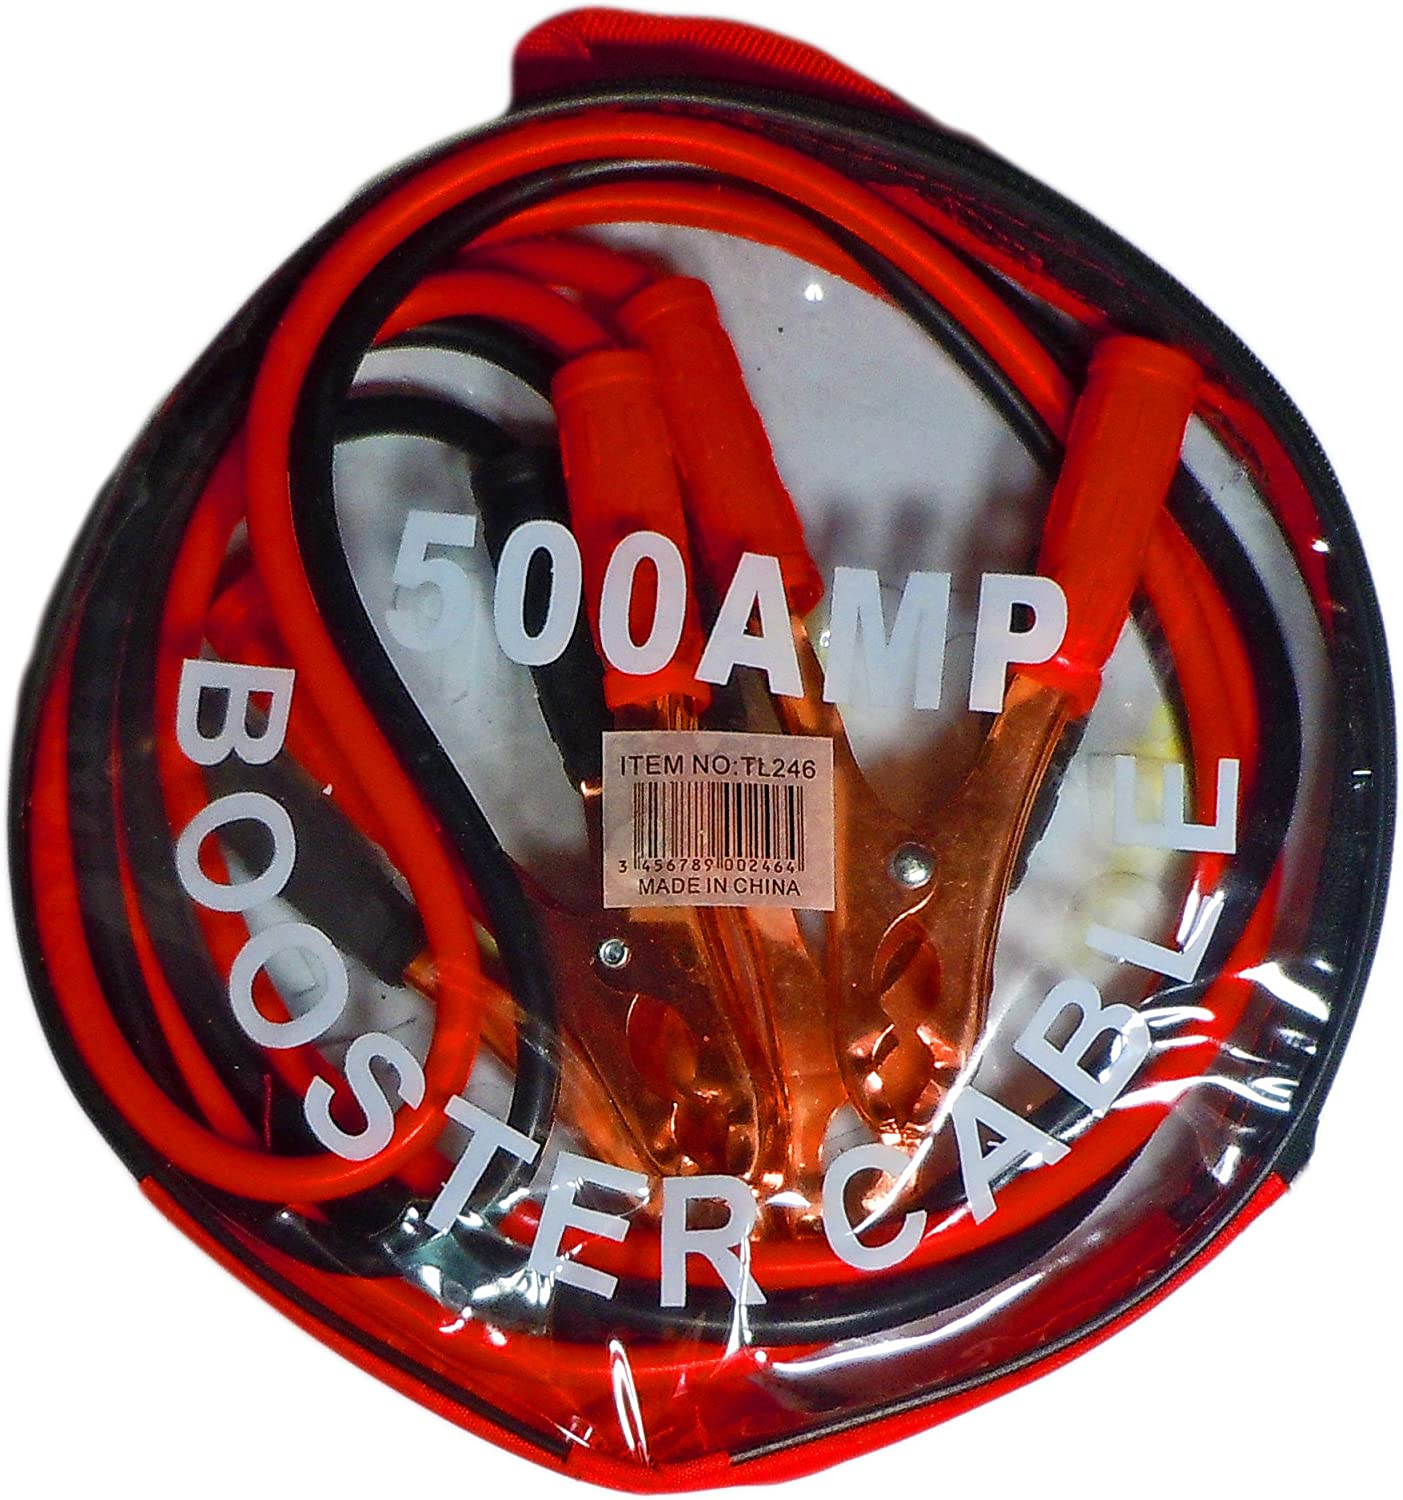 Vehicle Jumper Battery Cable 500 Chicago Mall AMP 7 Financial sales sale Includes Travel Feet- C